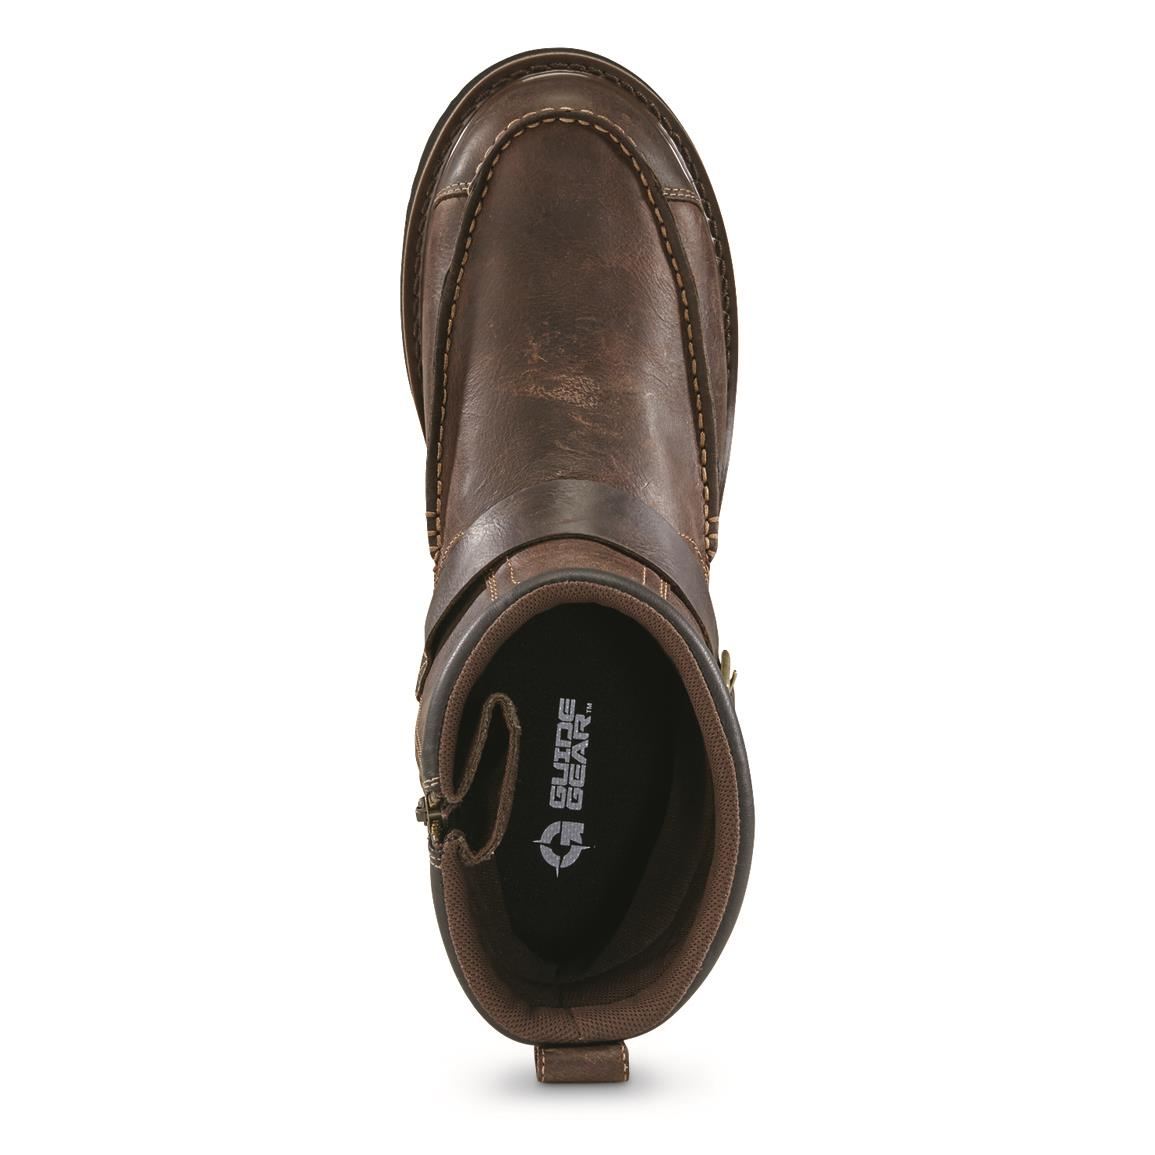 Roomy moc toe that fits comfortably even after a long day of foot-swelling, ground-pounding action